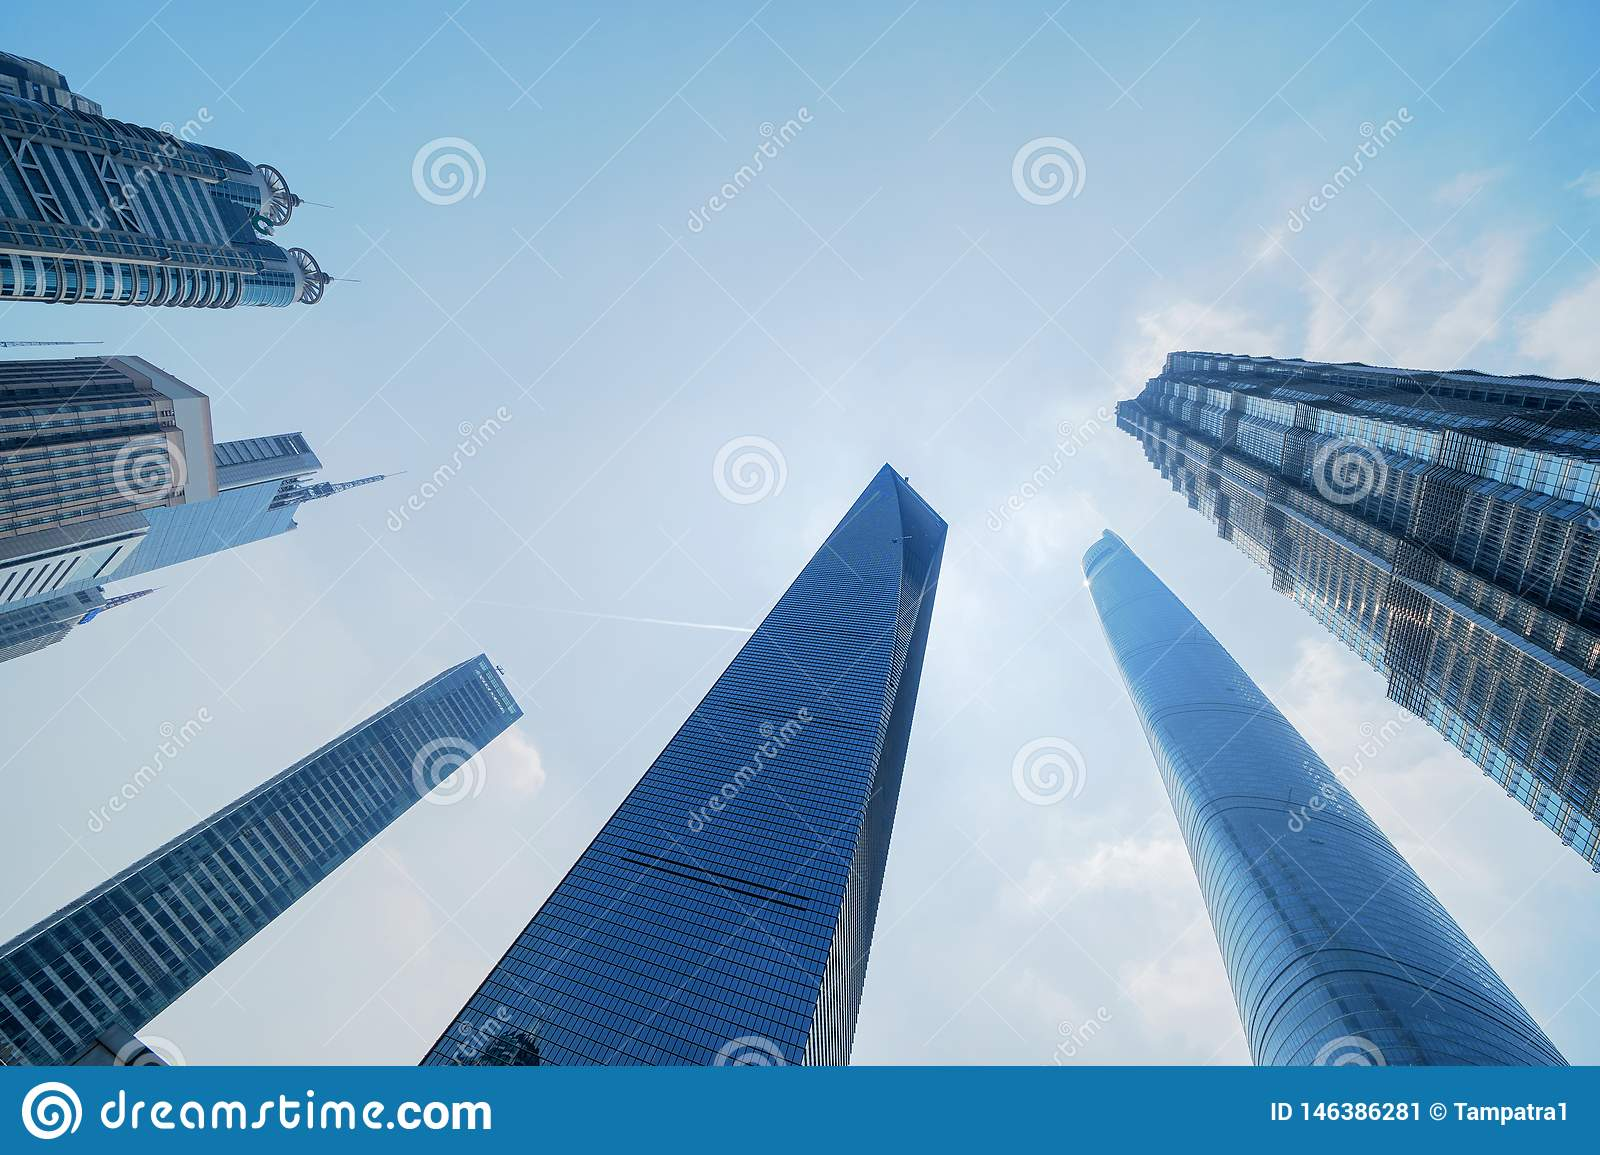 Skyscraper and high-rise office buildings in Shanghai Downtown, China. Financial district and business centers in smart city in